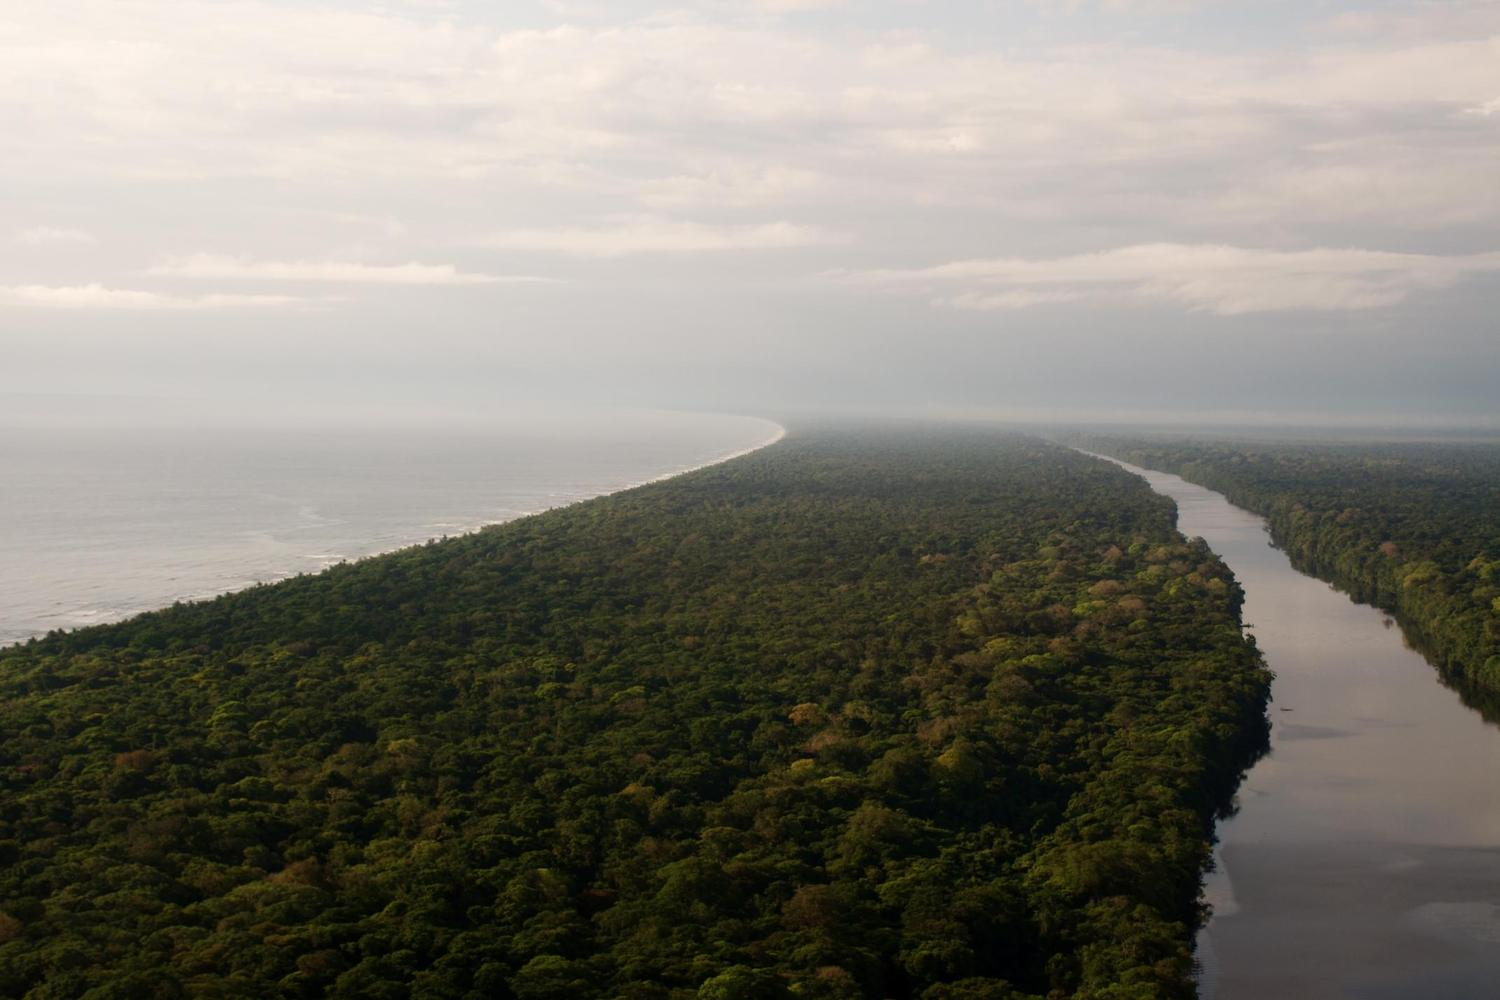 The waterways of Tortuguero on Costa Rica's Caribbean coast